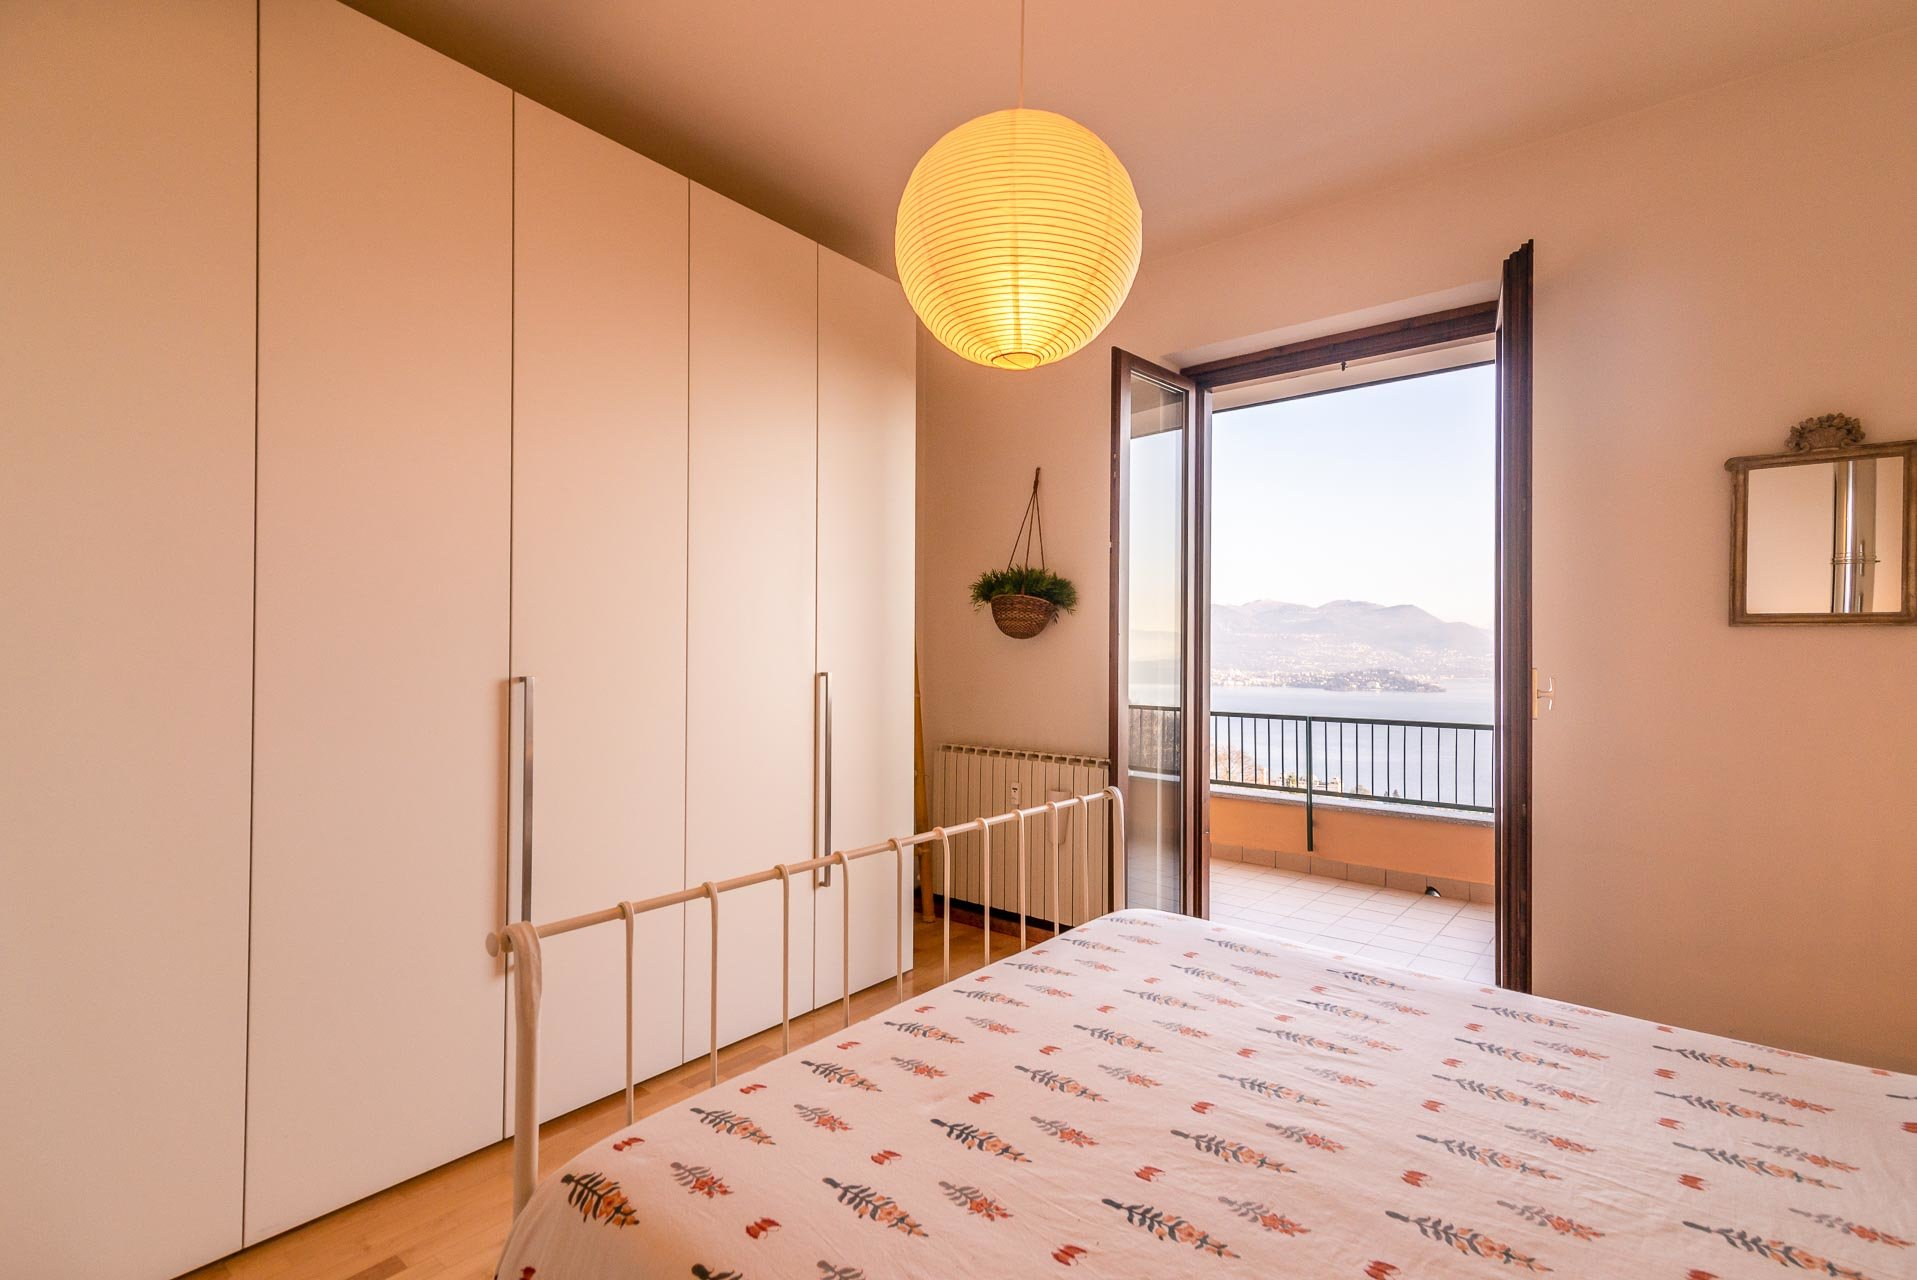 Apartment for sale in Stresa in a residence - bedroom with balcony